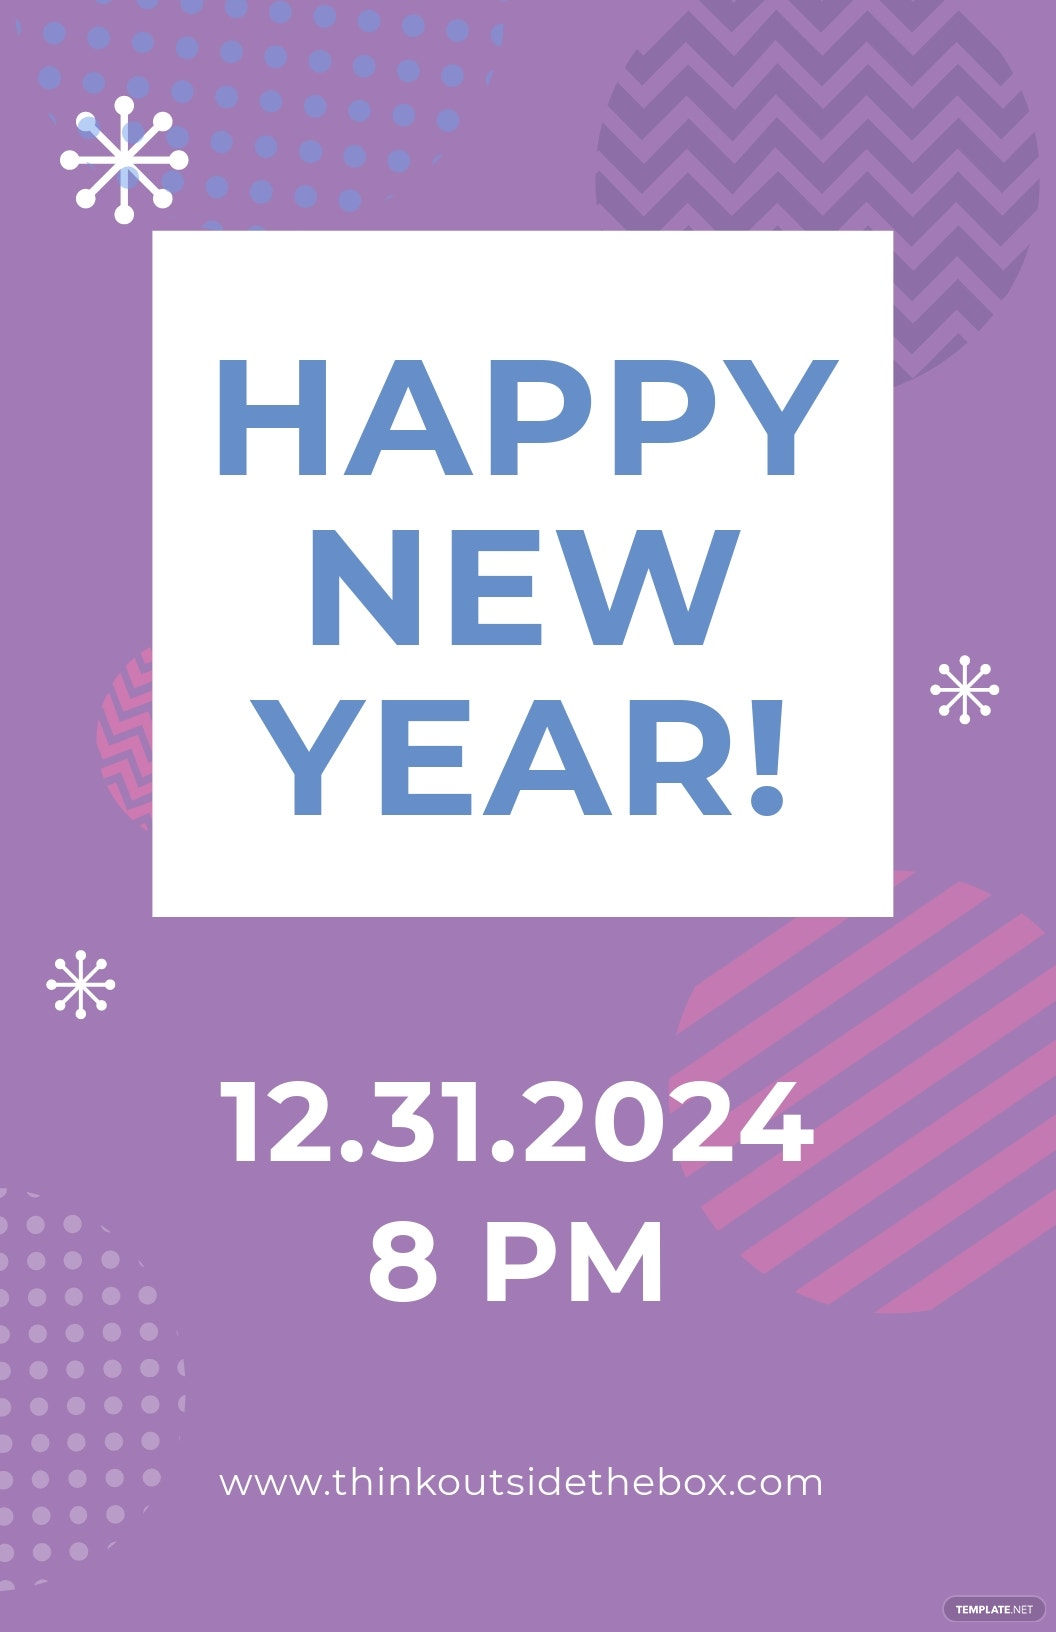 Free New Year Poster Template.jpe